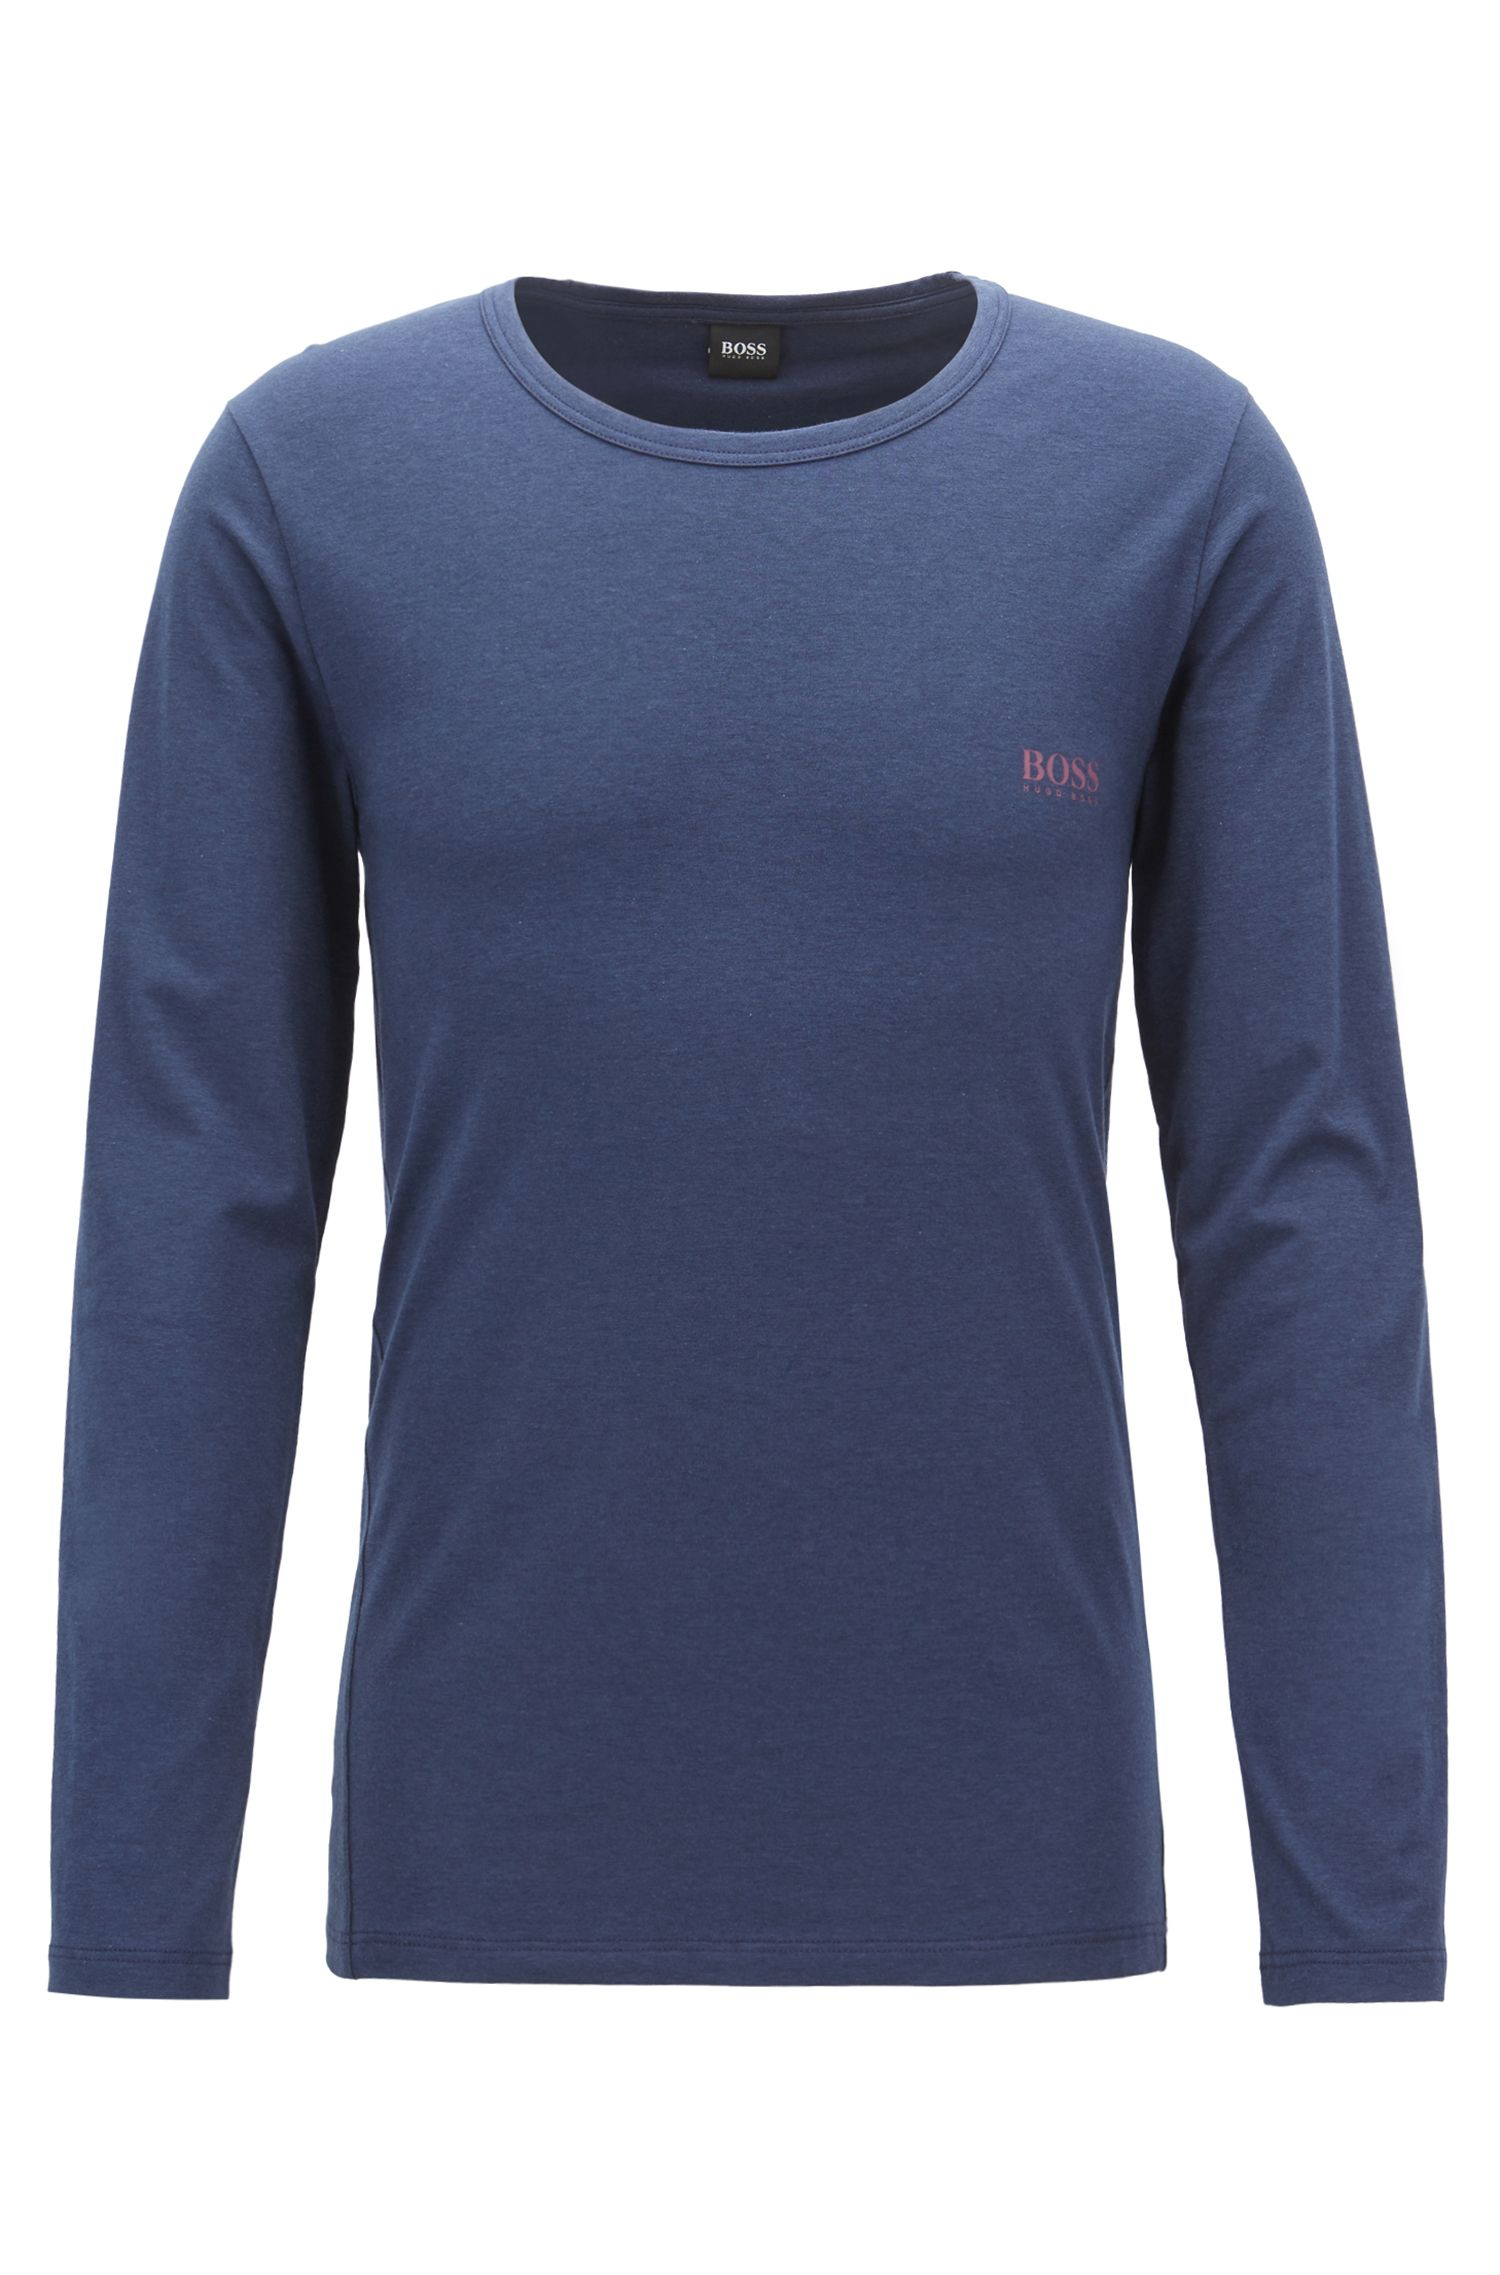 Long-sleeved underwear top in stretch jersey with logo, Dark Blue